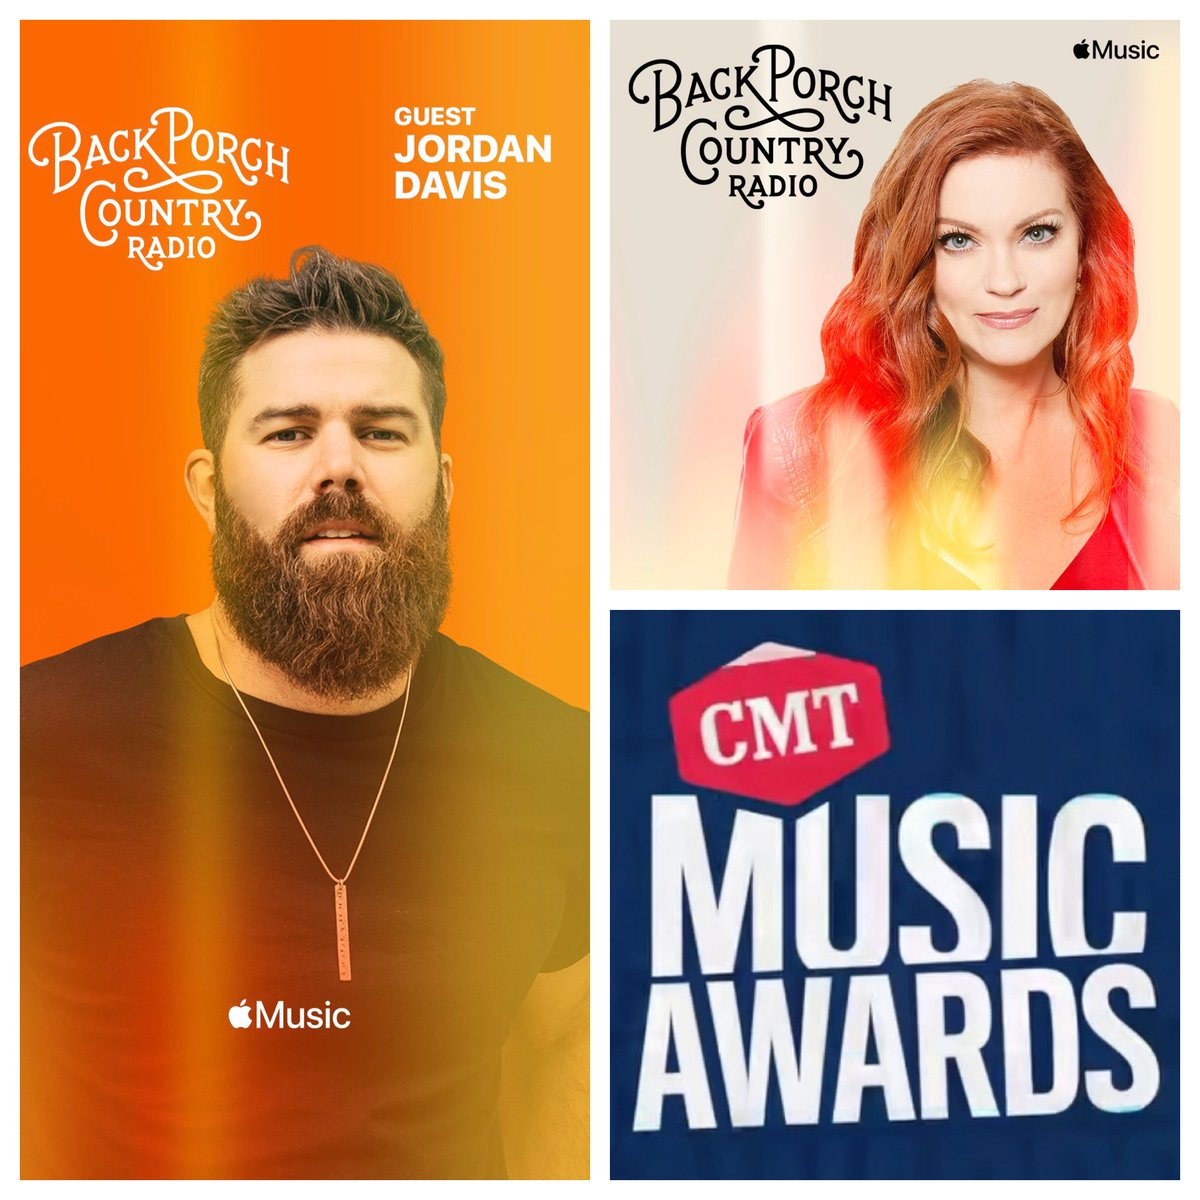 Today on Back Porch Country Radio @applemusic Jordan Davis is on the porch w/ us and I'm featuring a few CMT Award nominees, 6p/ 7ET/ 4PT #backporchcountry #applemusic #jordandavis #CountryMusic